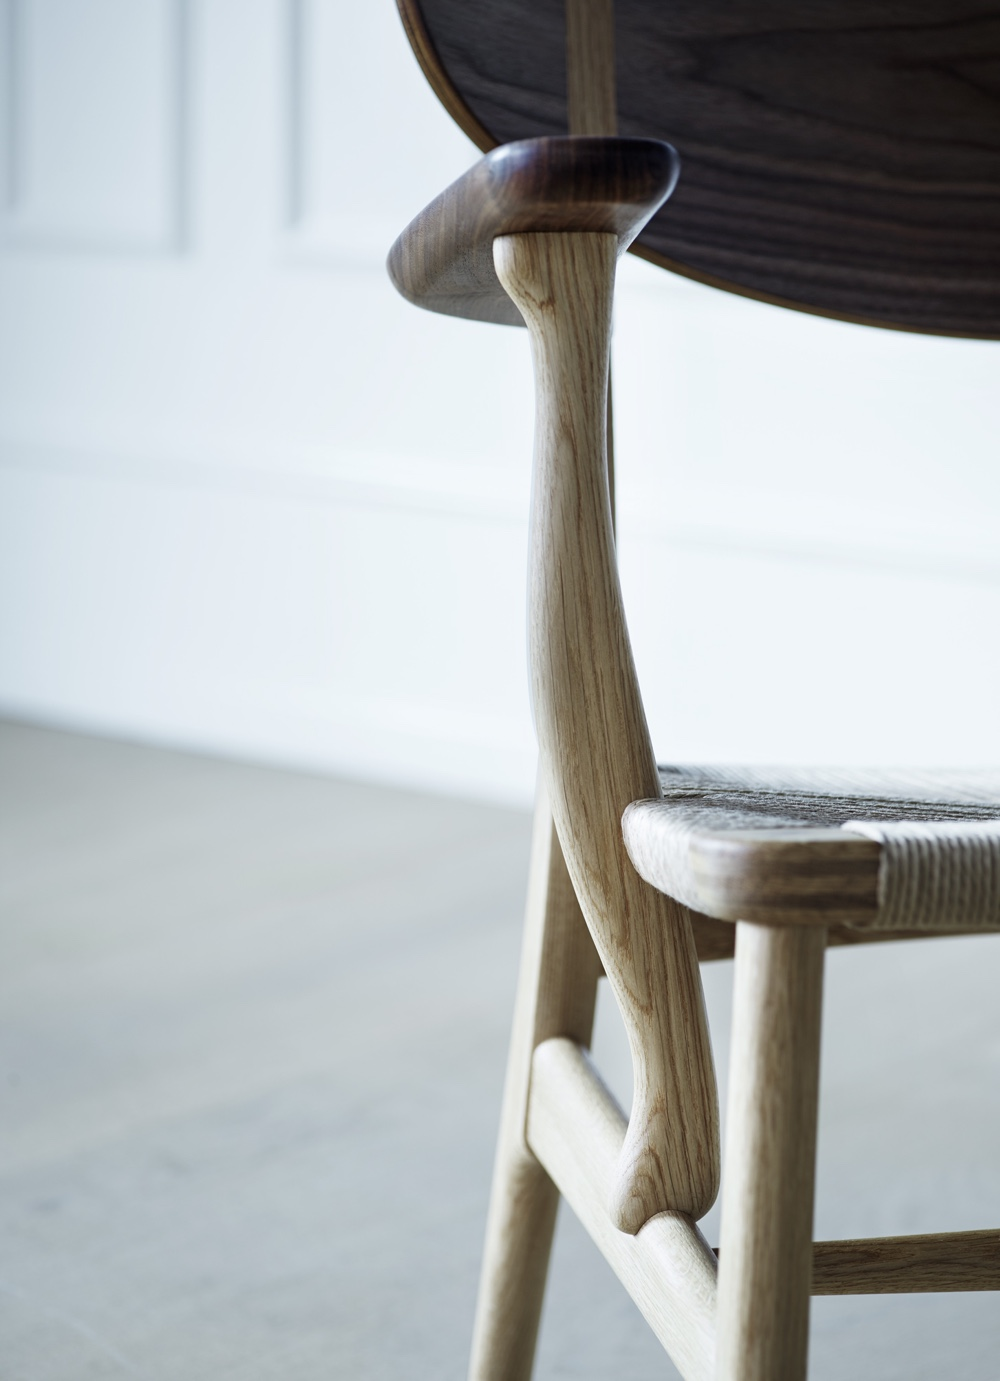 CH22 lounge chair: armrest detail in an oak and walnut mix.